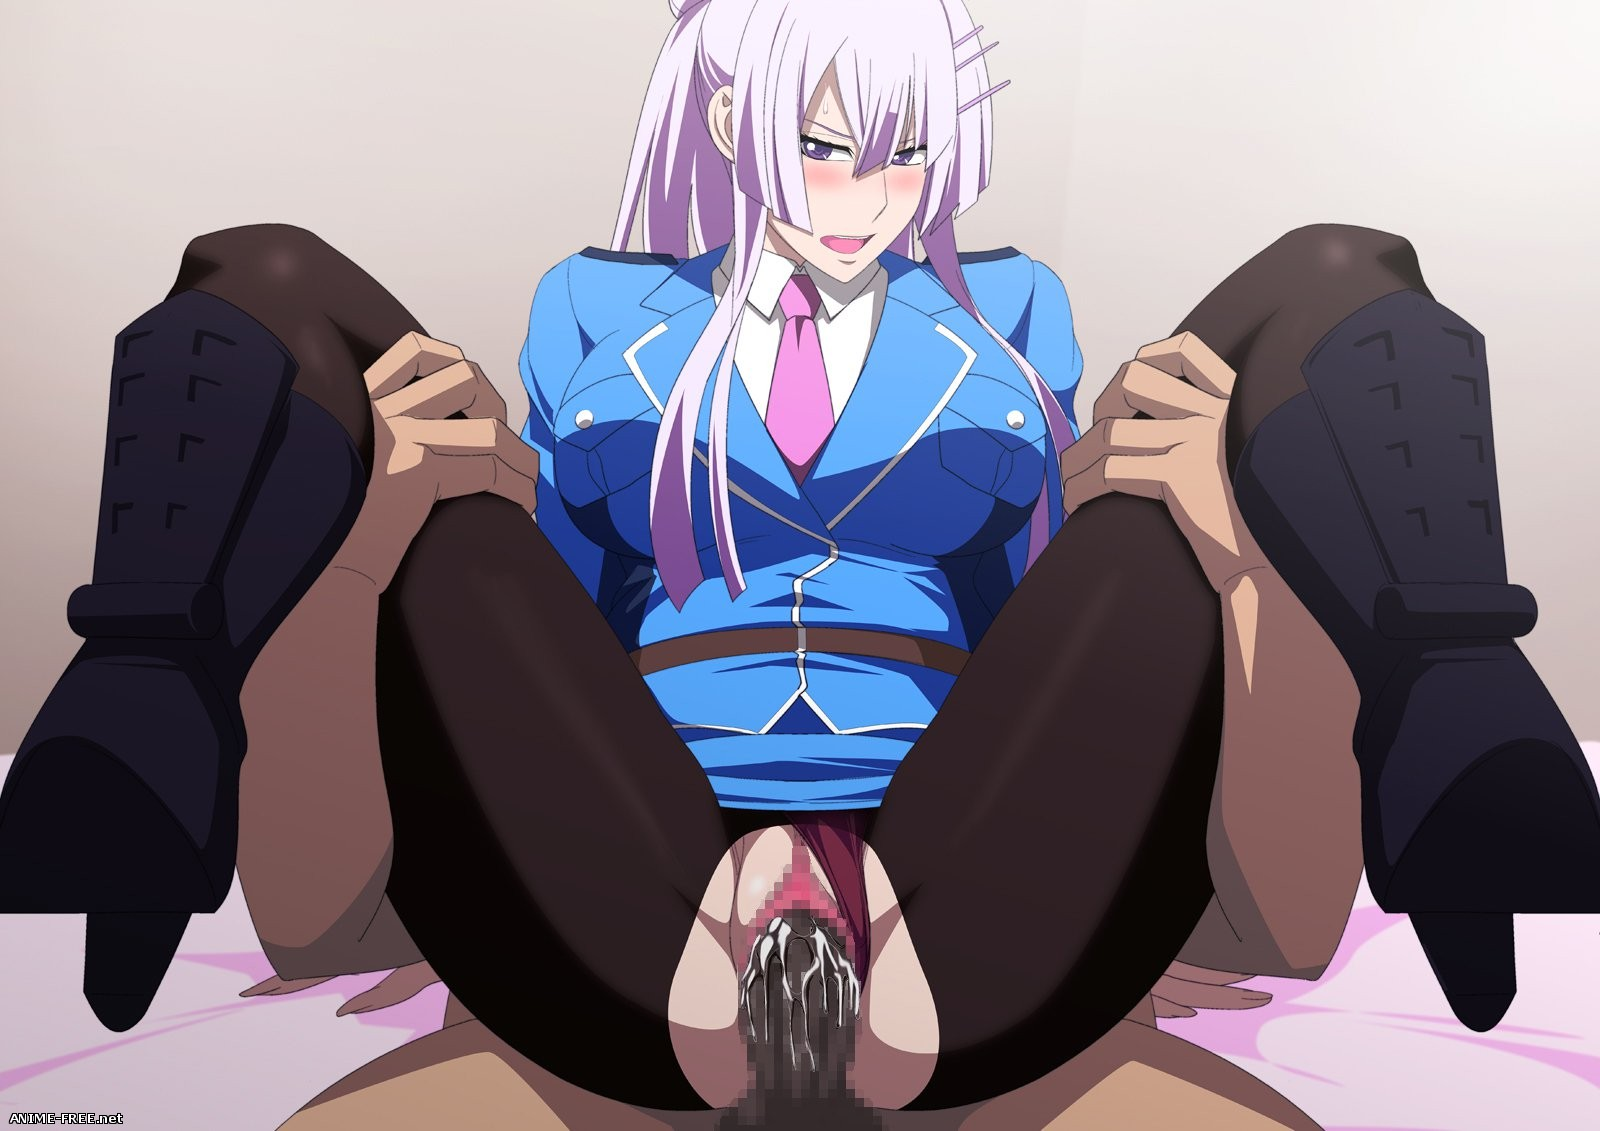 PURPLE HAZE - Сборник хентай картинок [Cen] [JPG,PNG] Hentai ART